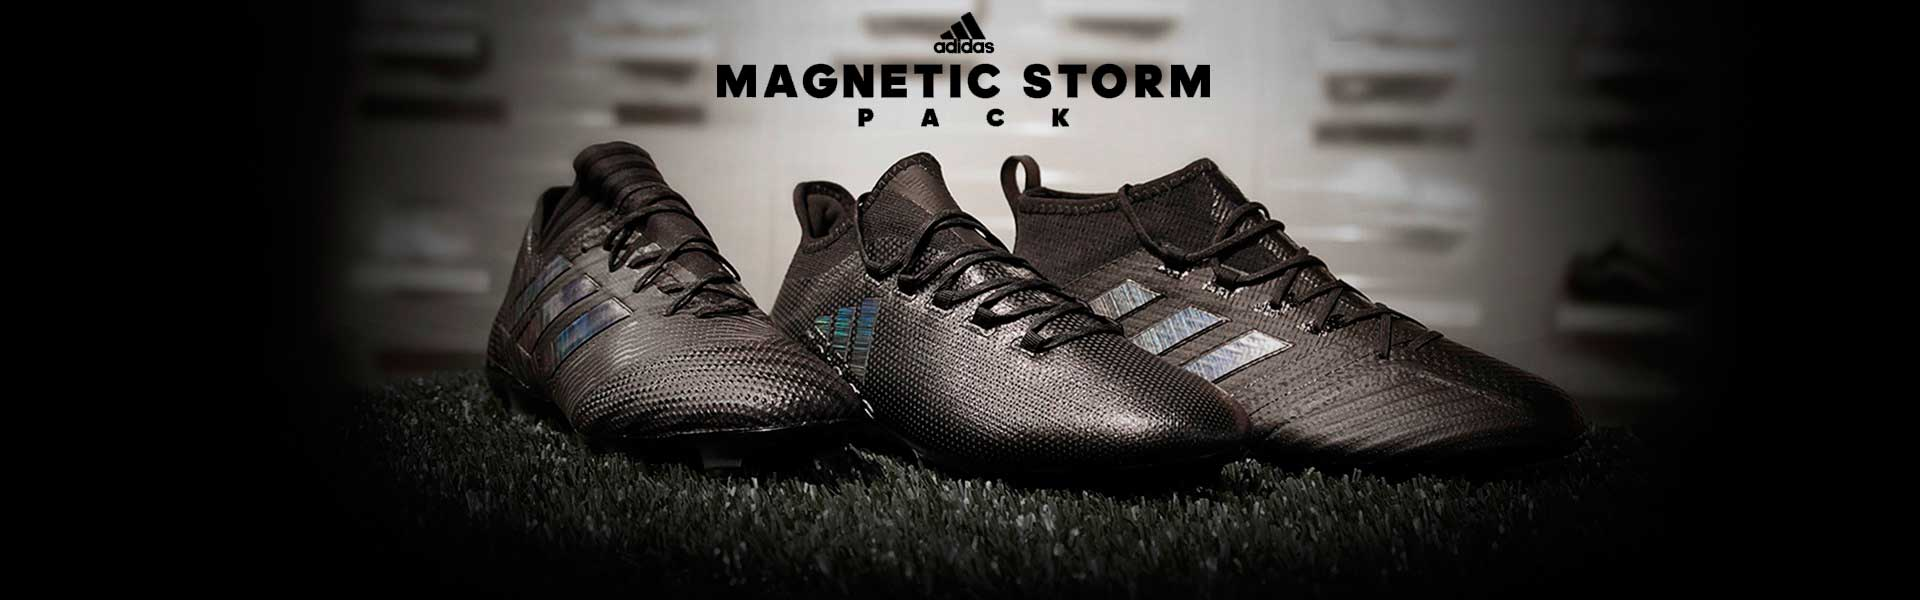 MAGNETIC STORM PACK